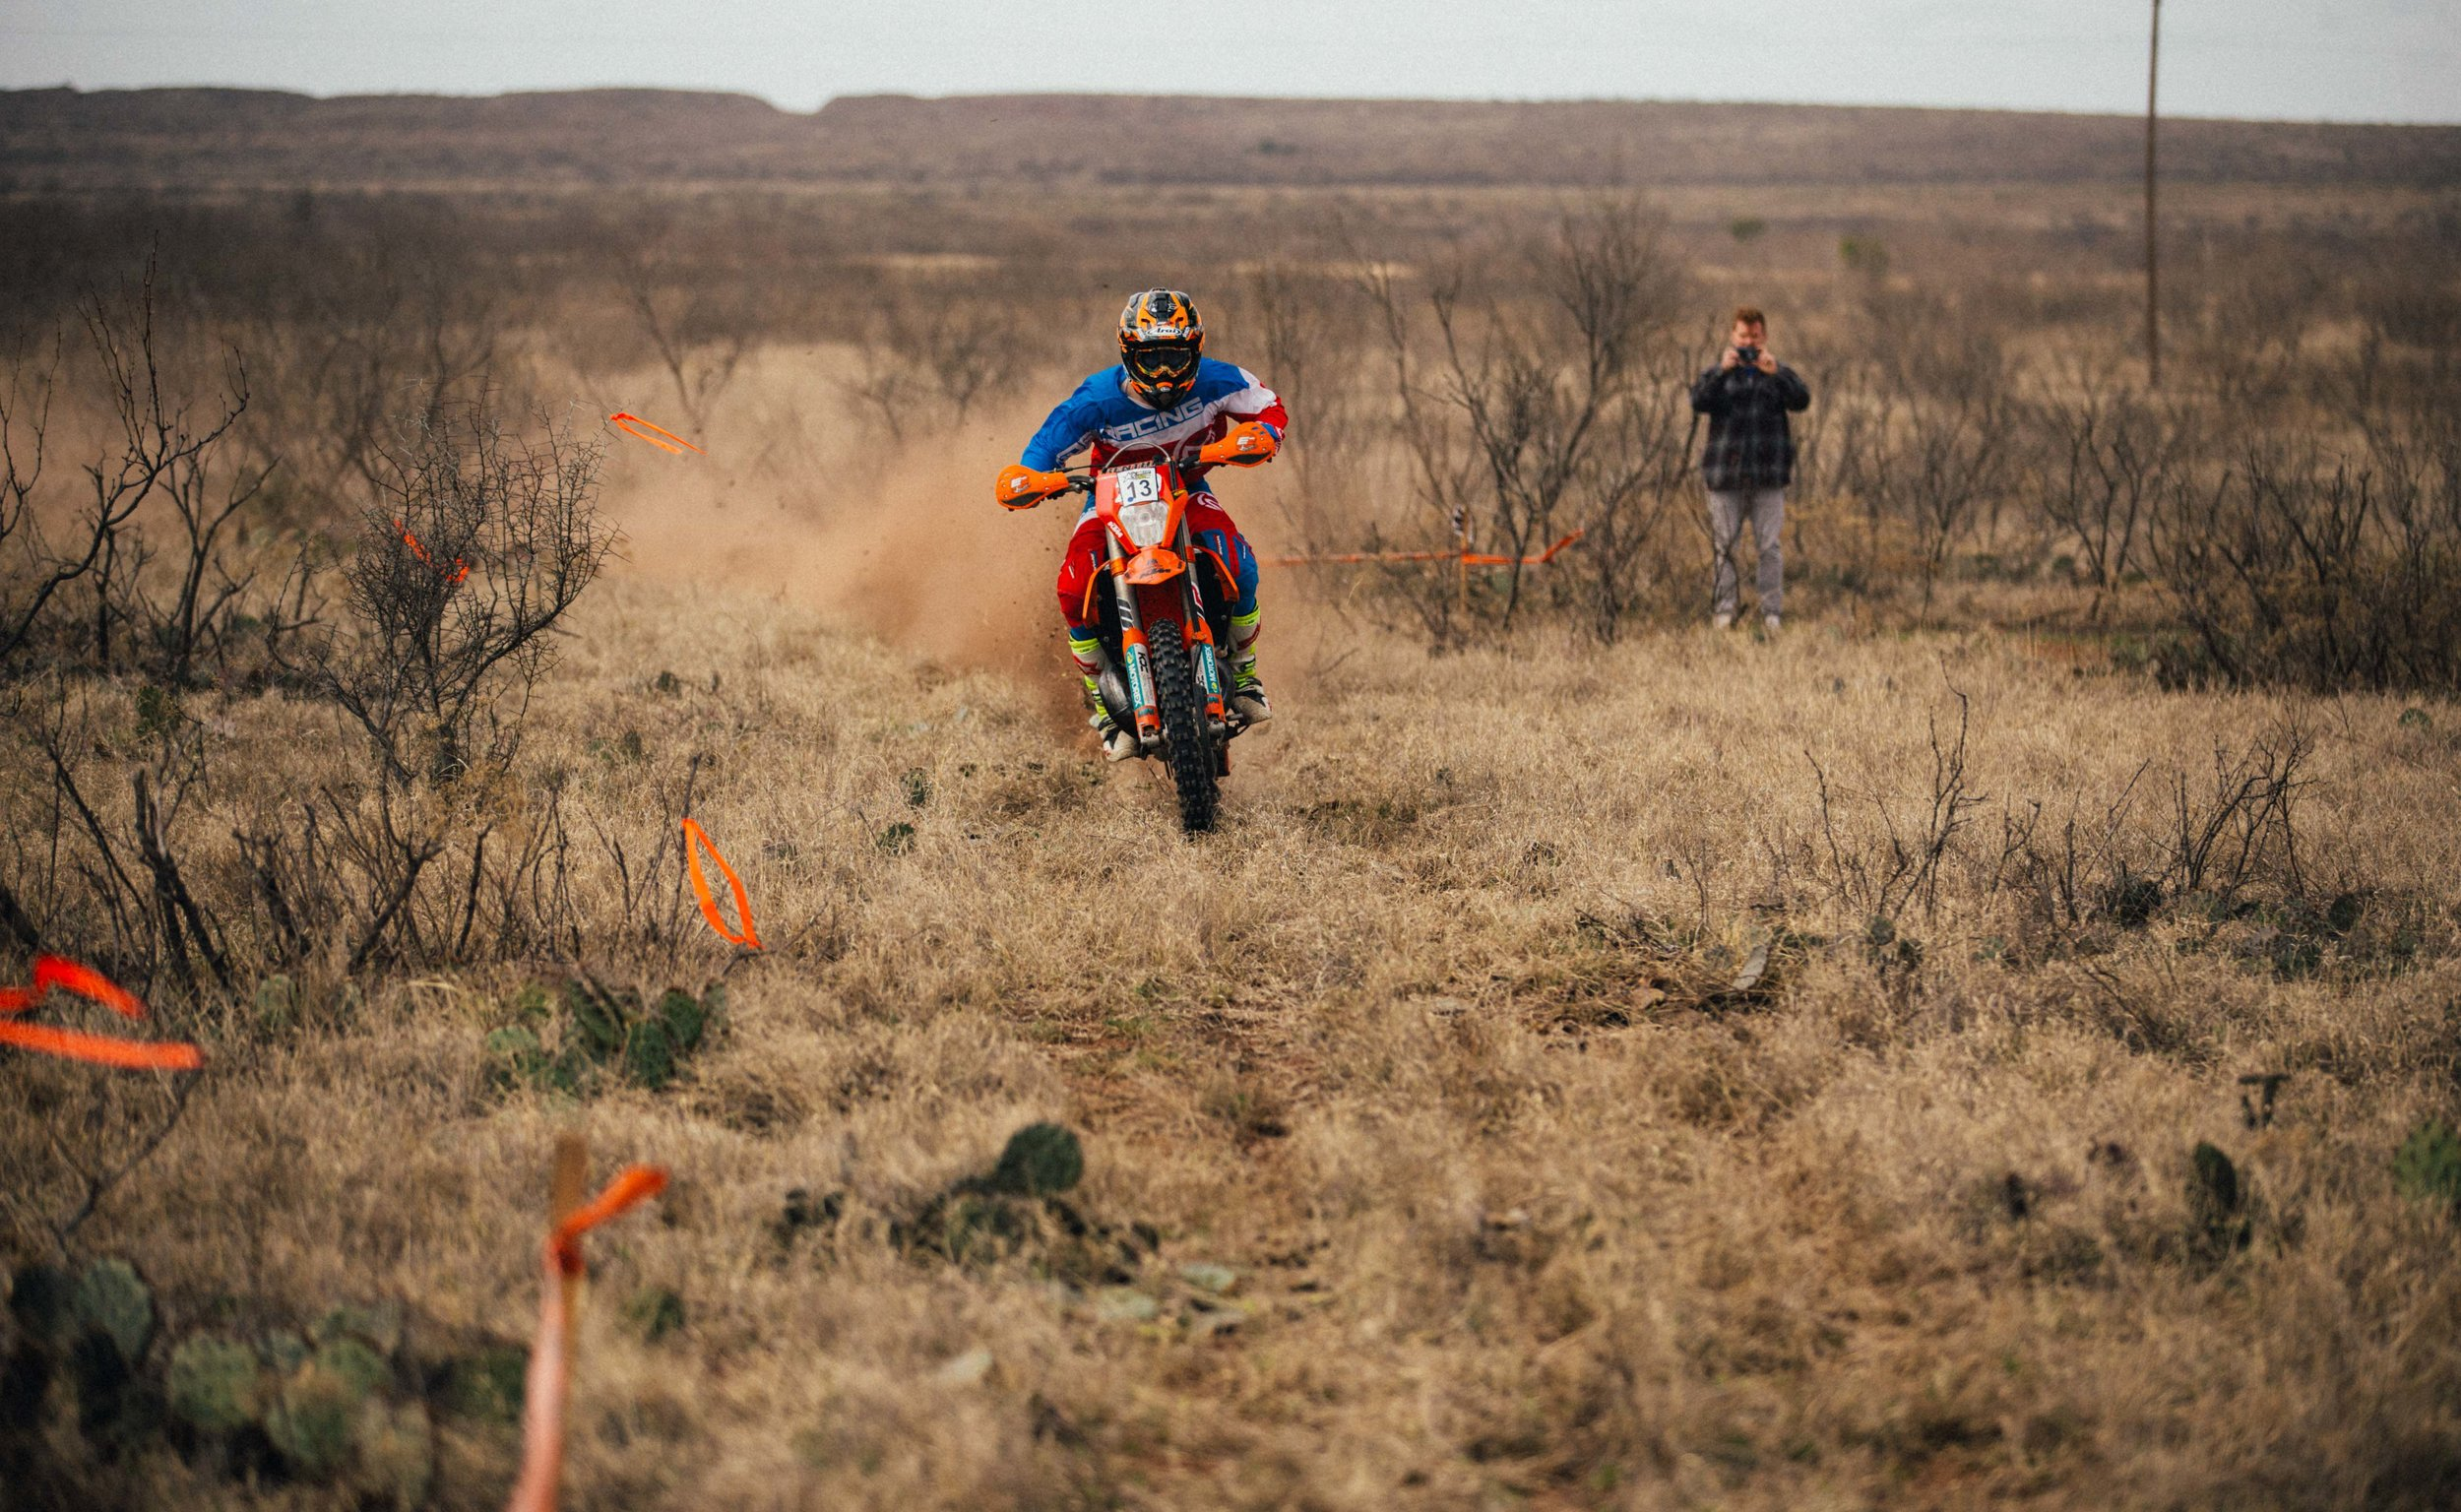 Charging into the finish of one of the sprint enduro tests on Saturday.